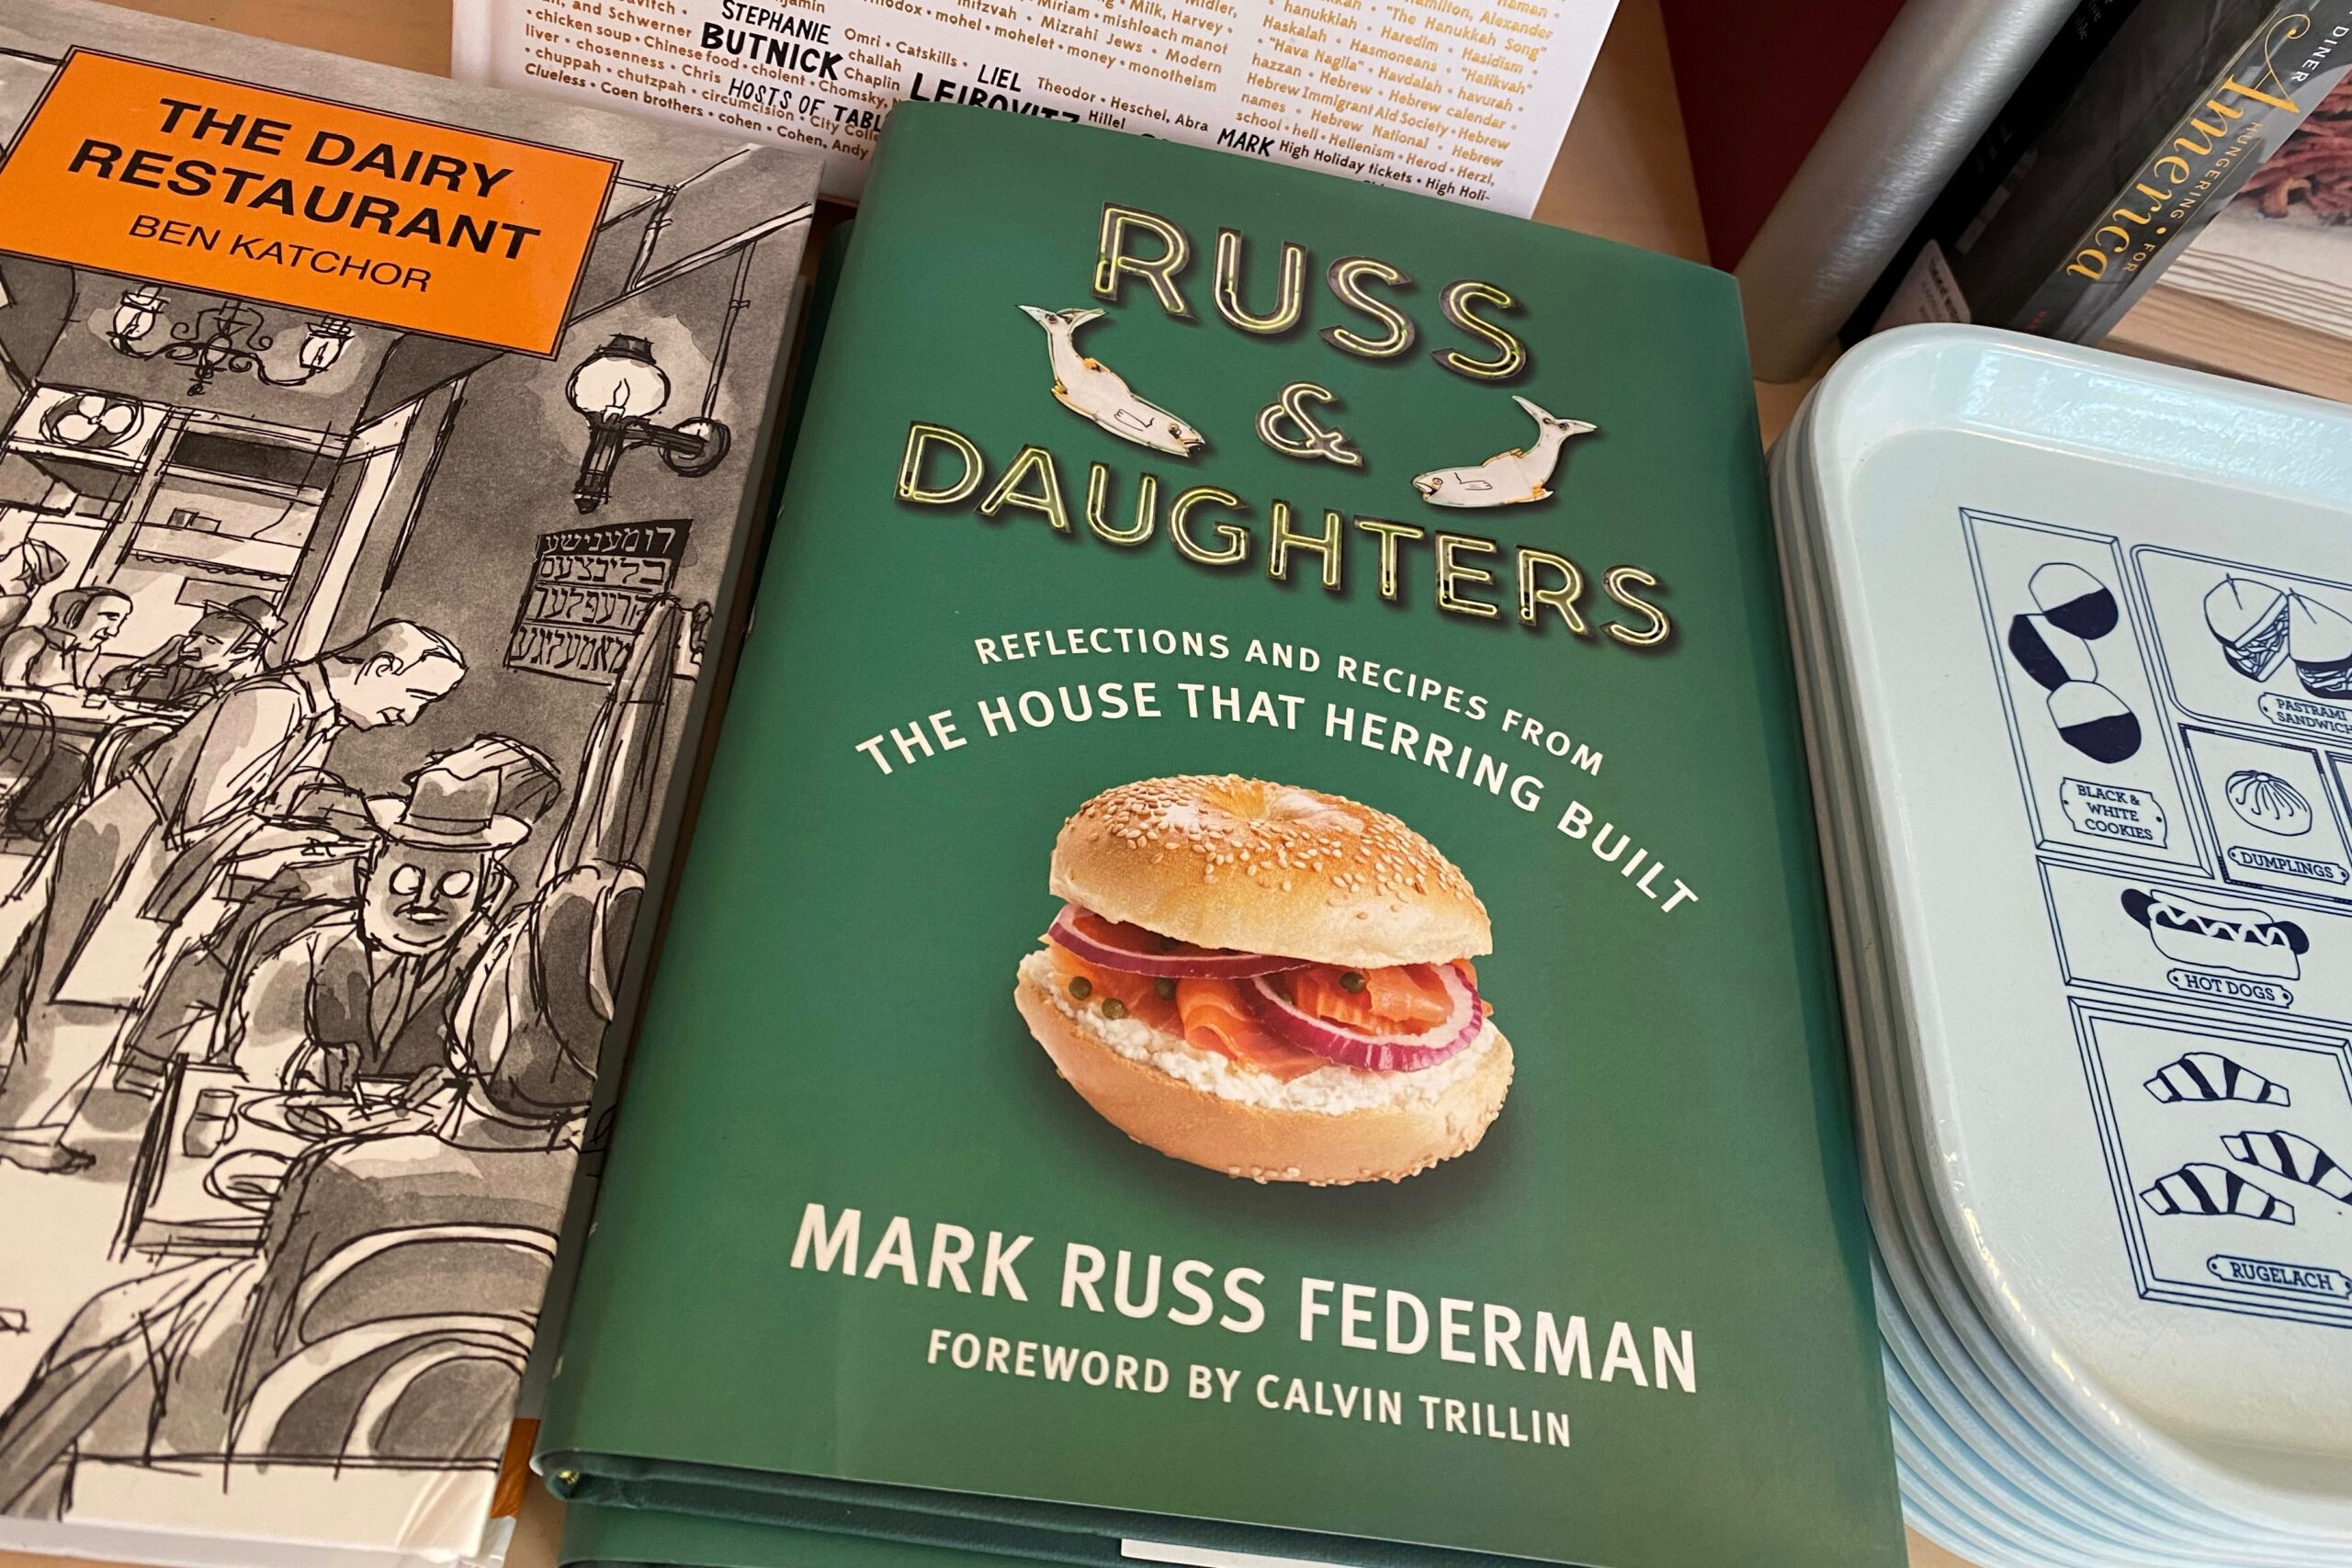 russ and daughters nyc lower east side restaurant cookbook cover